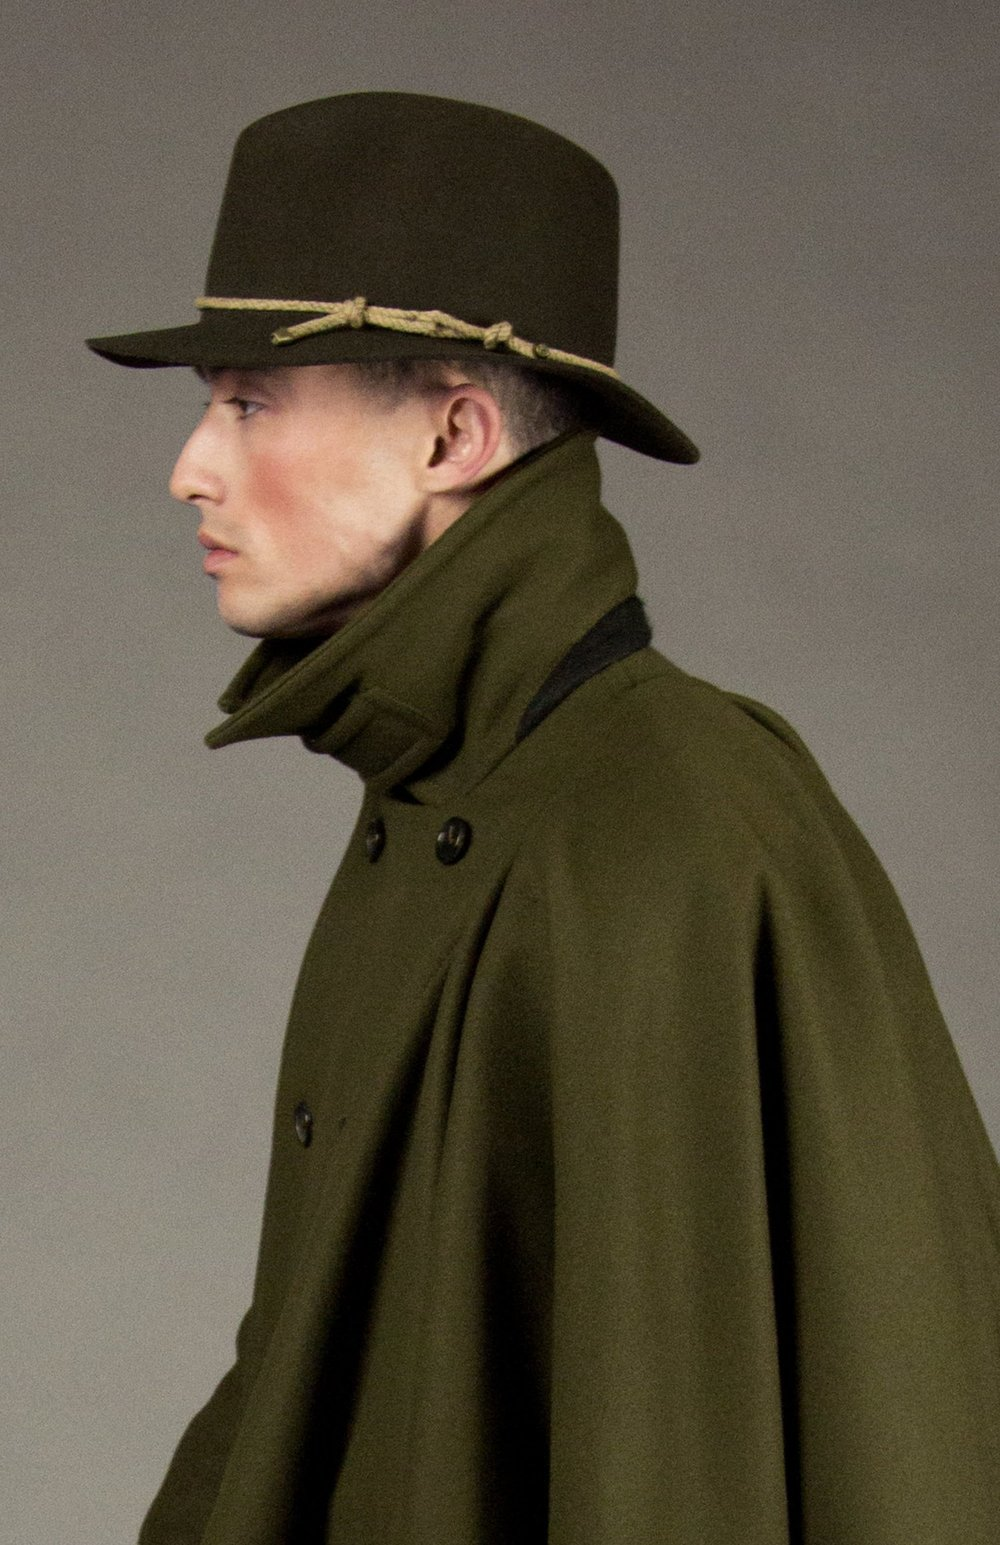 hat 1 loden  felted fedora with signature natural melange rope detail and brass metal tips. made in collaboration with bollman hats, the oldest hat manufacturer in america.  sizes 1-2  100% felted wool  100% cotton interior band in our signature khaki twill